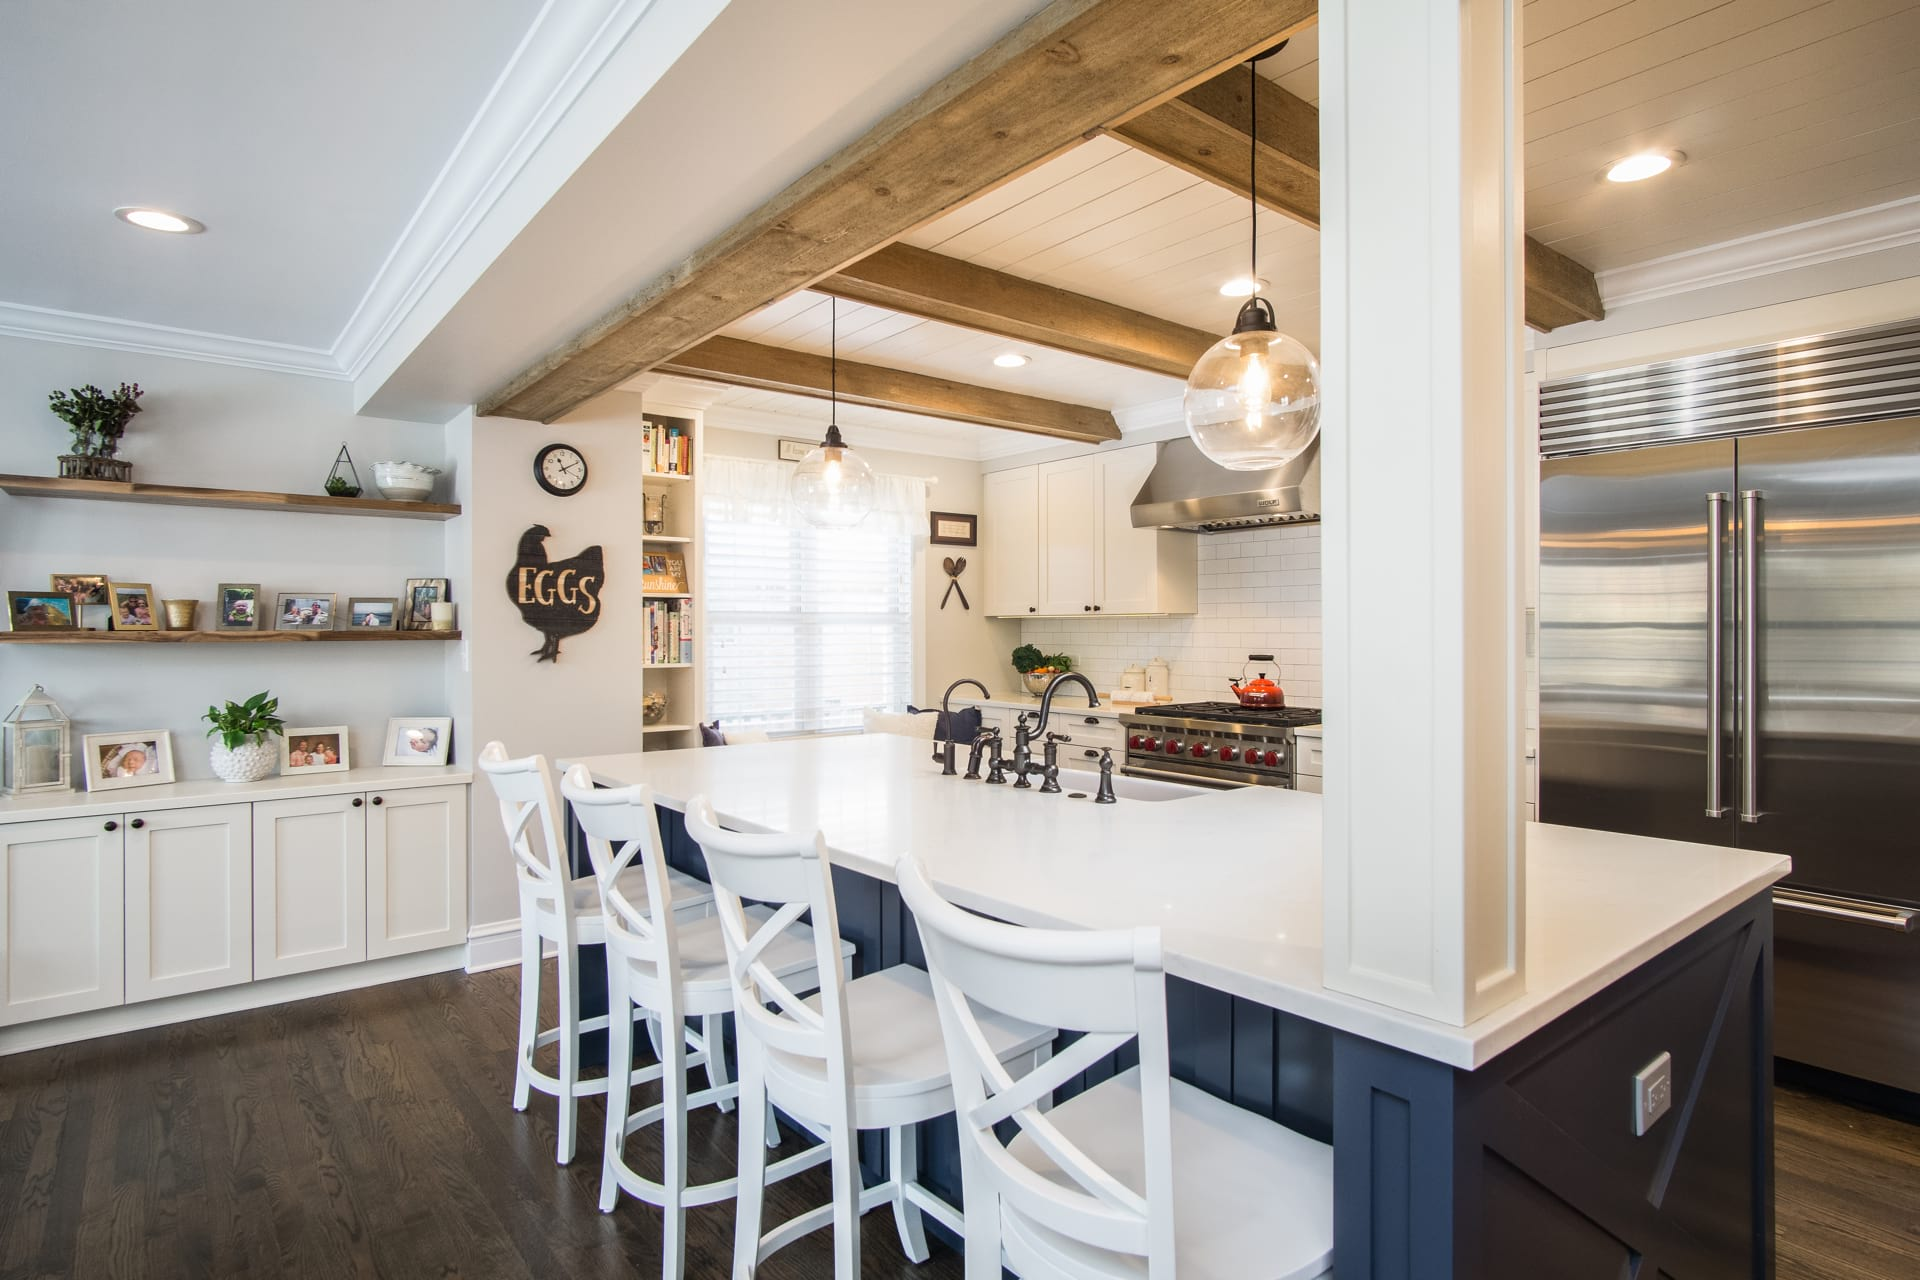 Chicago Leader Home Design-Build Remodeling Project Gallery